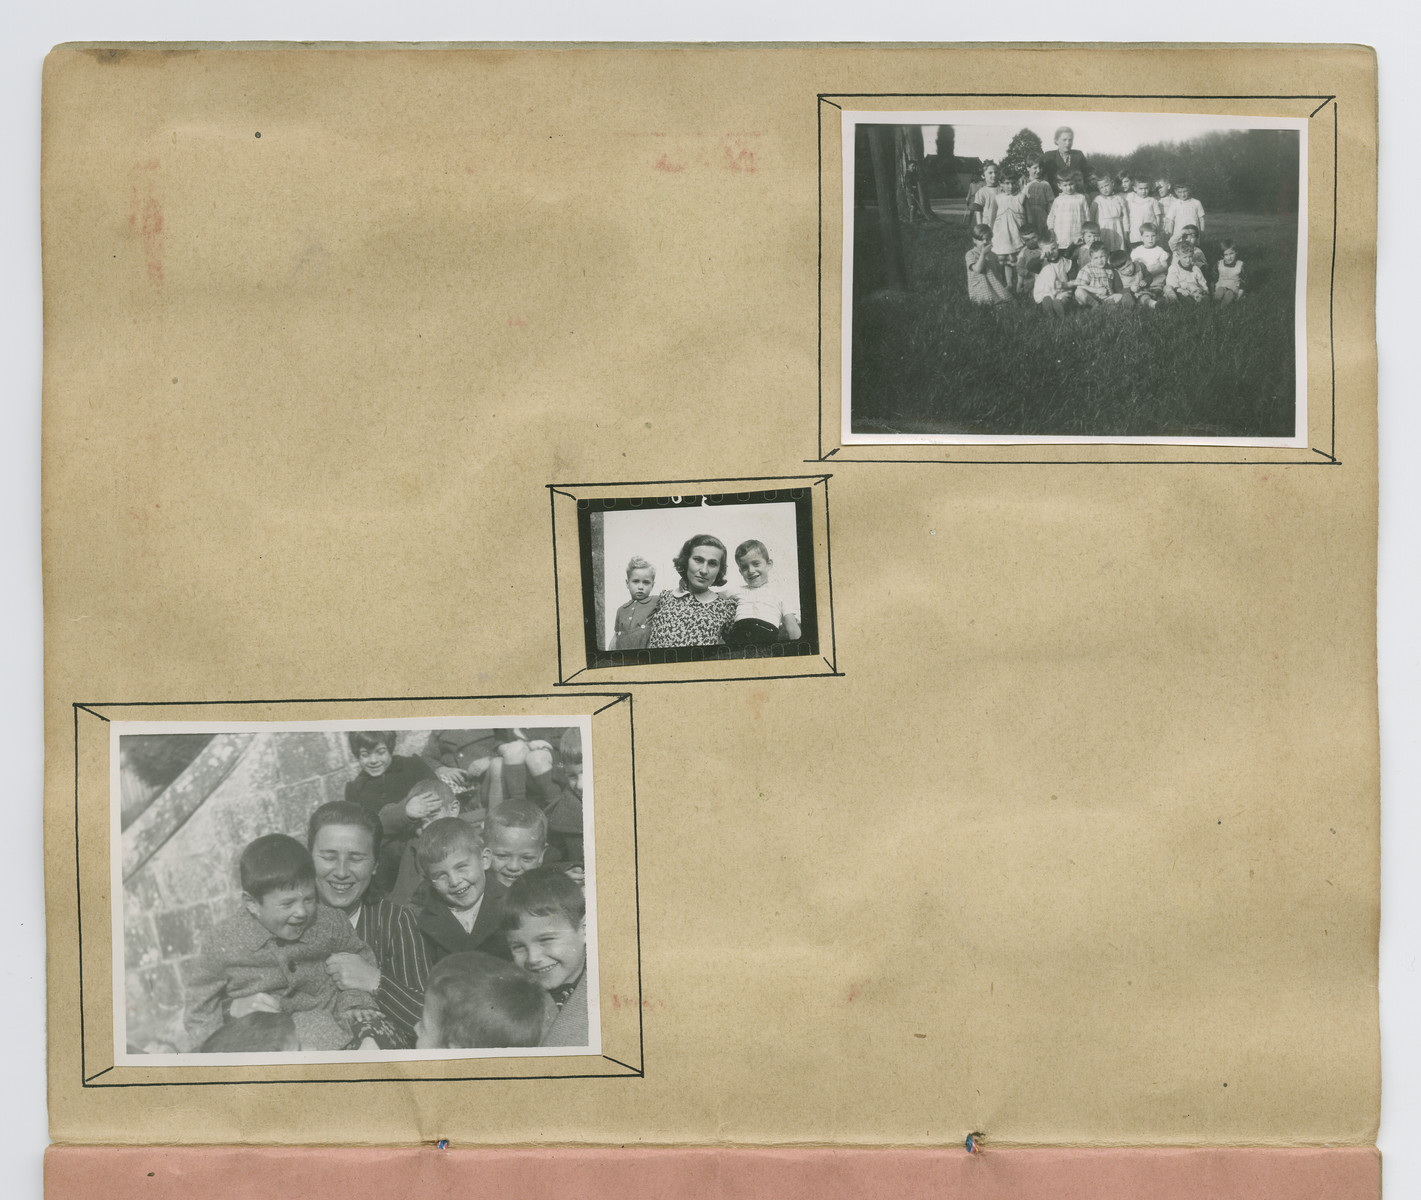 Photographs of children in Chateau-le-Masgelier from a souvenir scrapbook presented to Boris Wolosoff prior to his emigration from France.